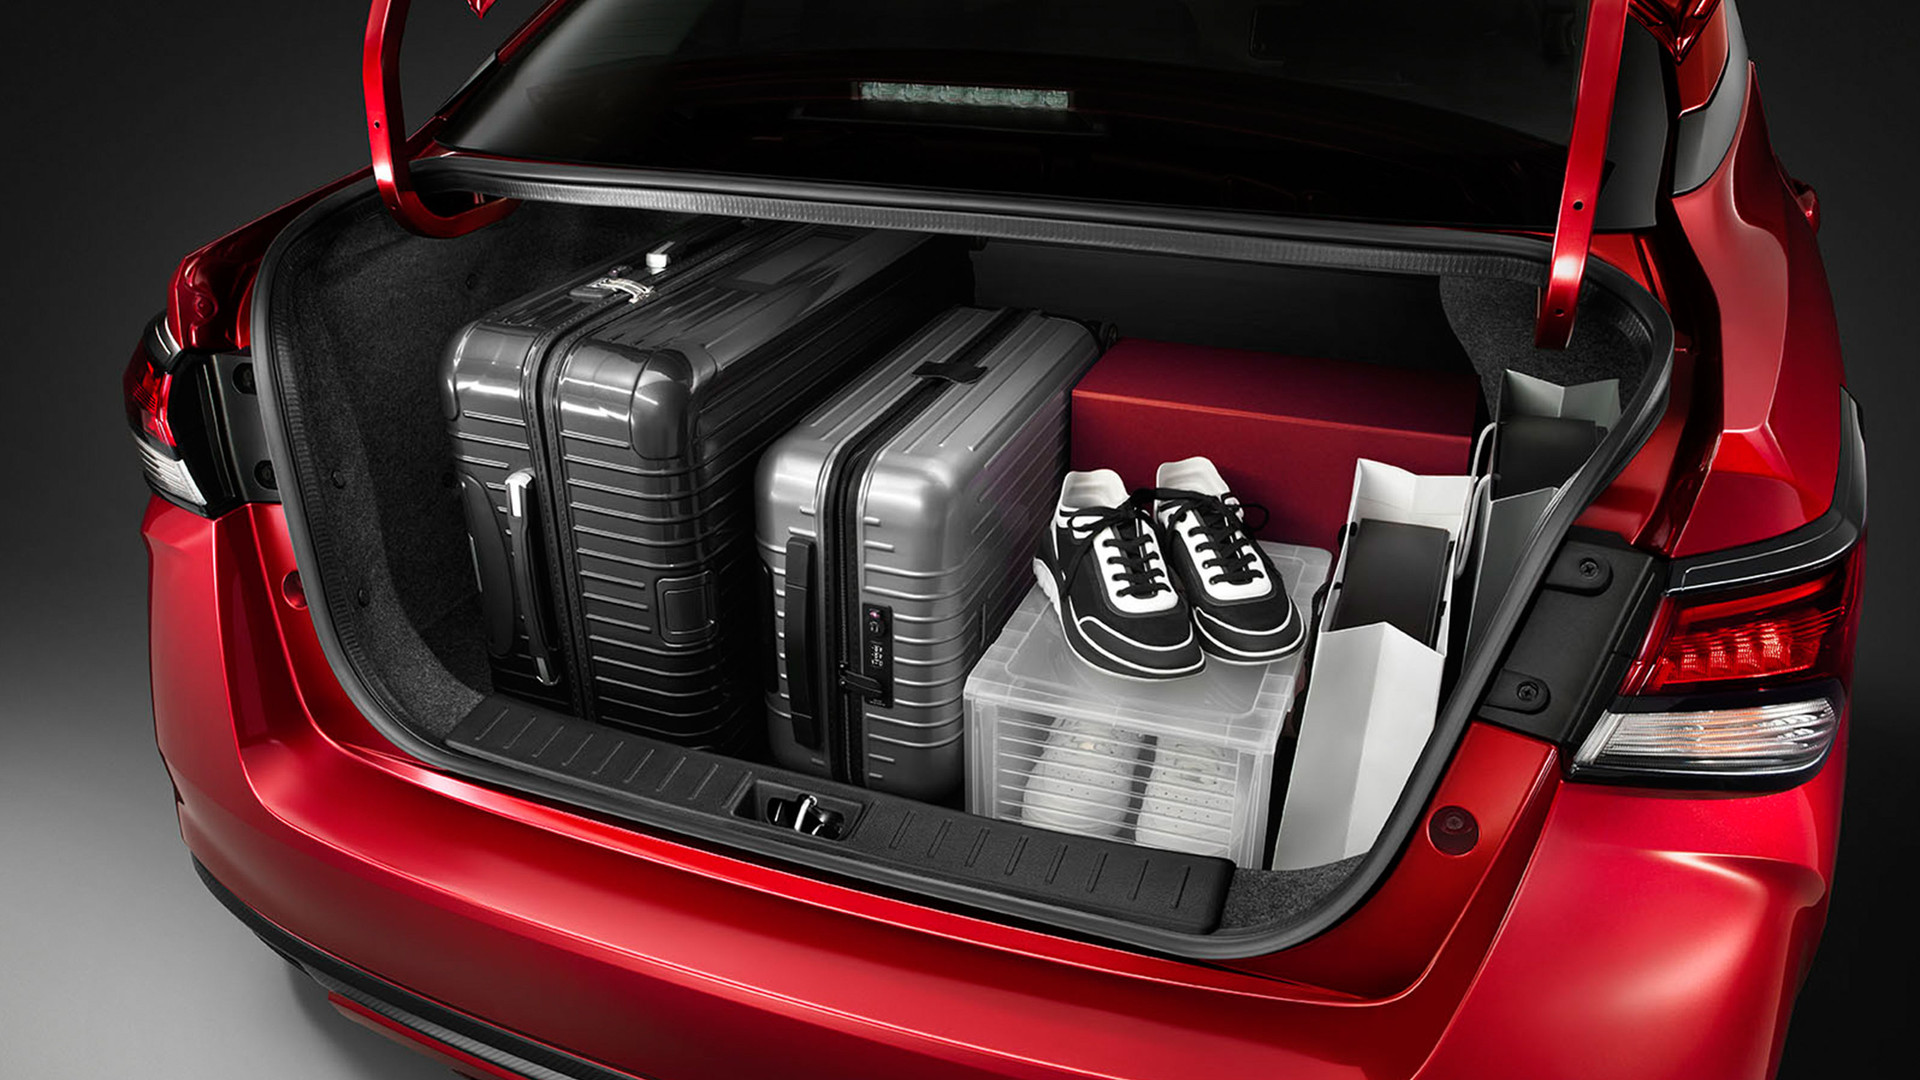 All-New-Nissan-Almera-trunk-01-3200x1800